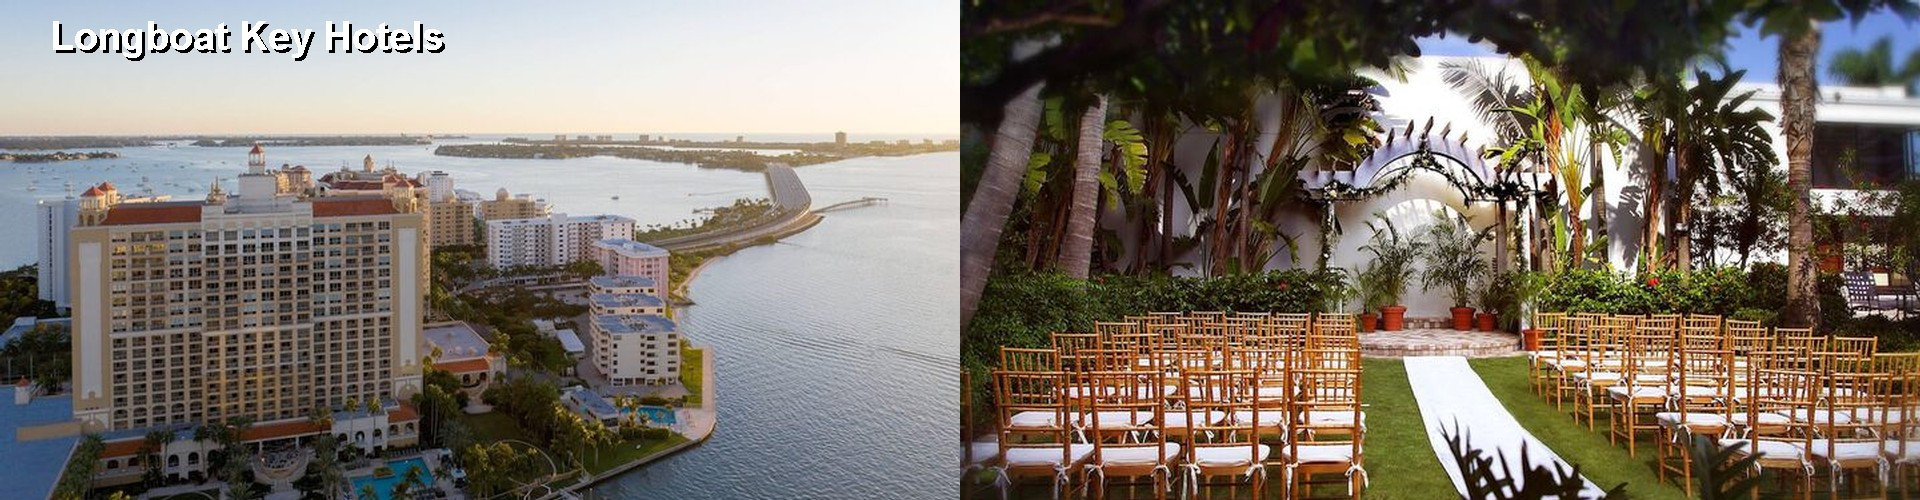 5 Best Hotels near Longboat Key